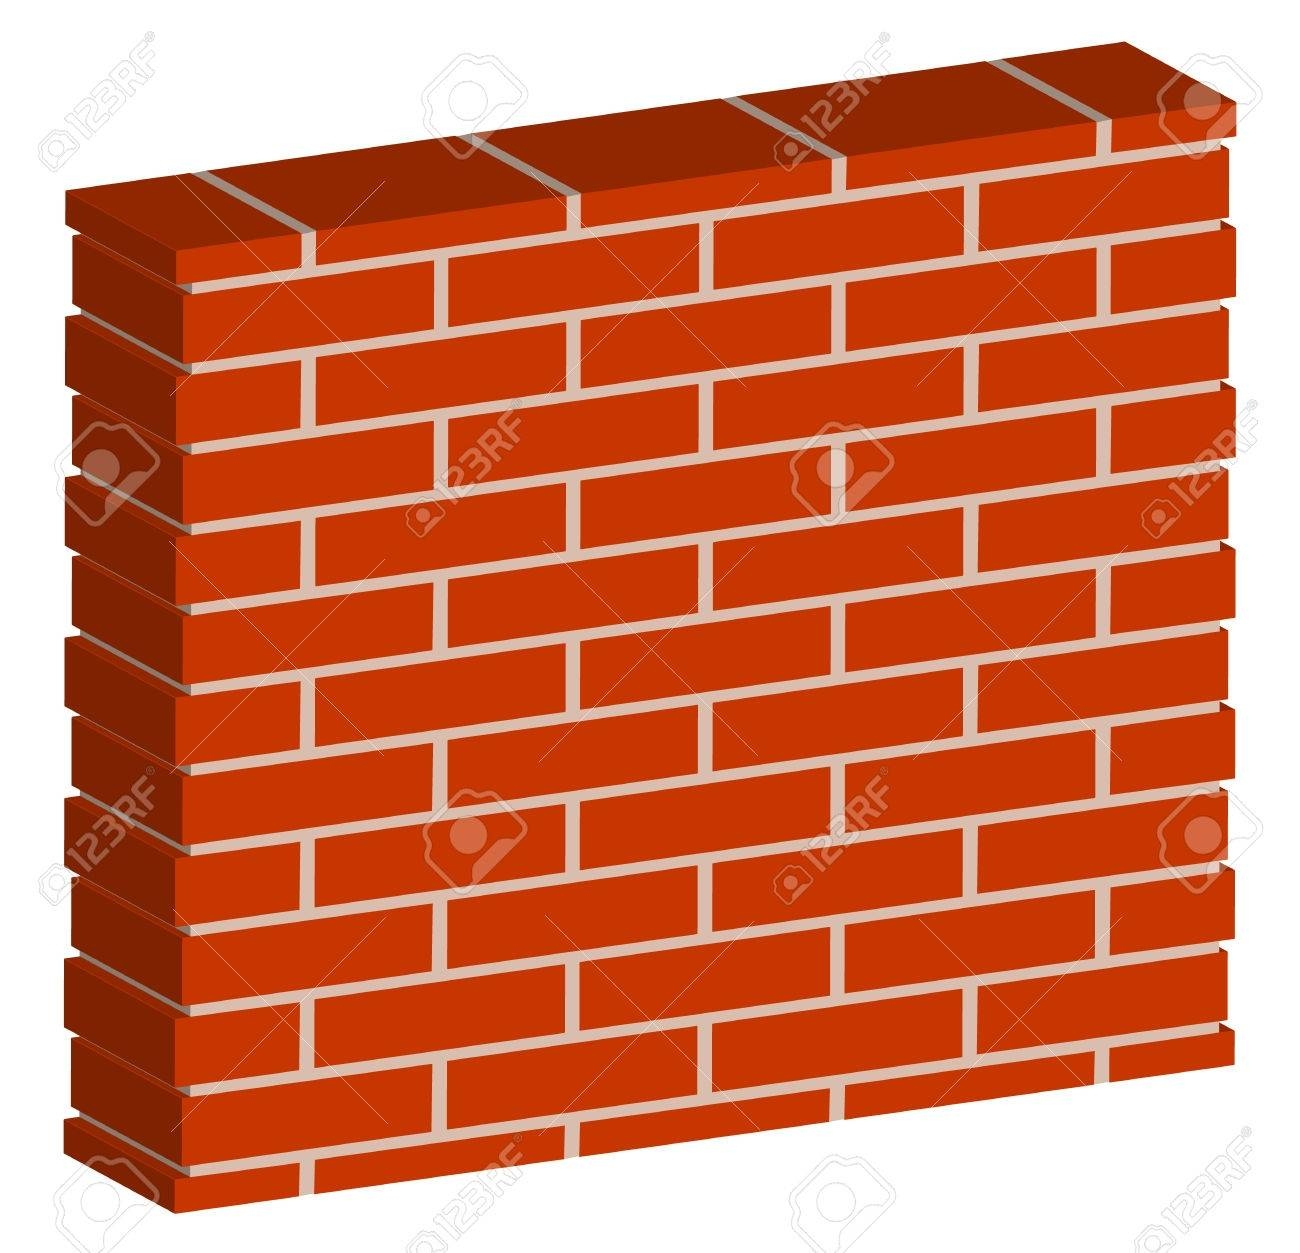 Brick Clipart 3D Intended For 2017 3D Brick Wall Art (View 8 of 20)